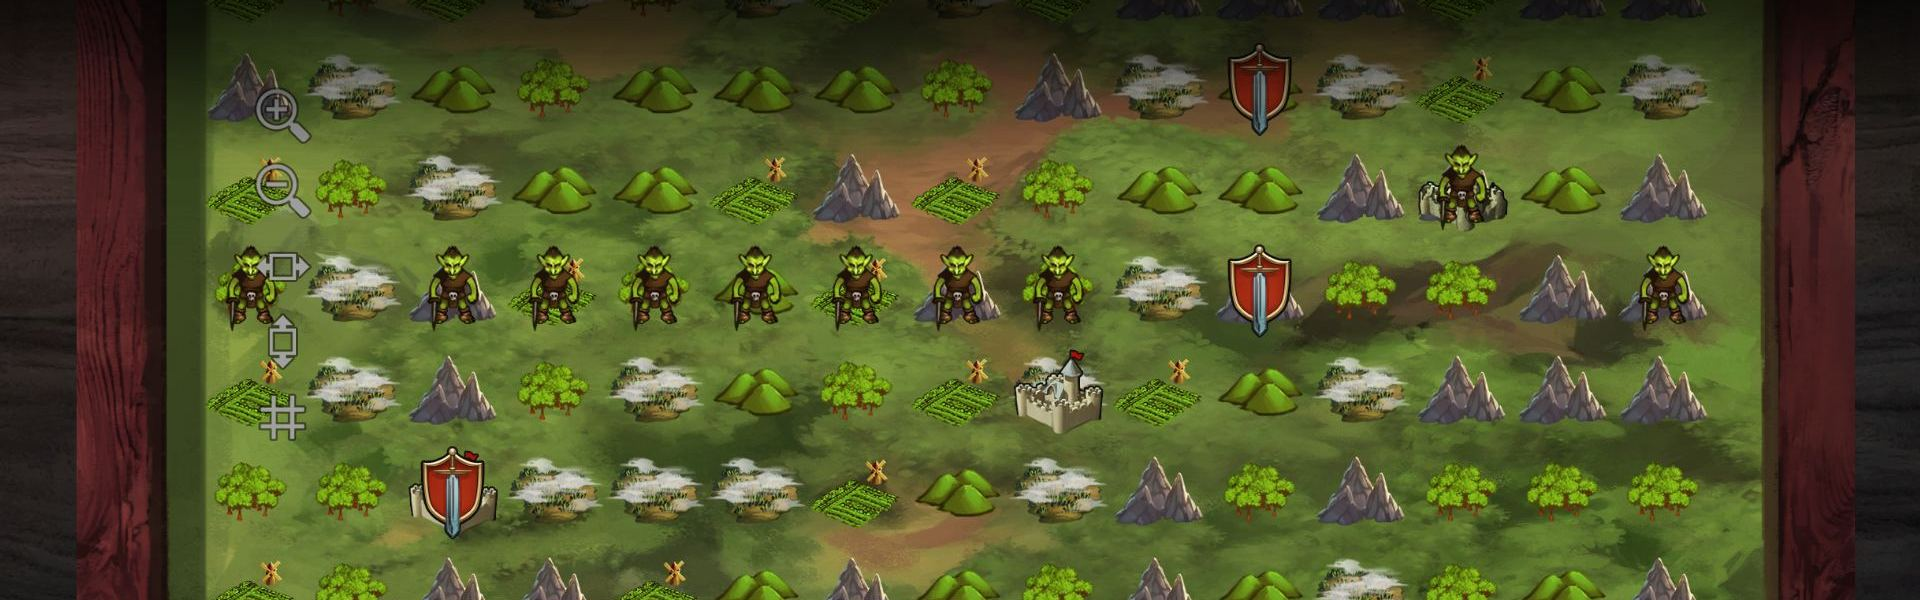 Goblin Harvest: The Mighty Quest Steam Key GLOBAL